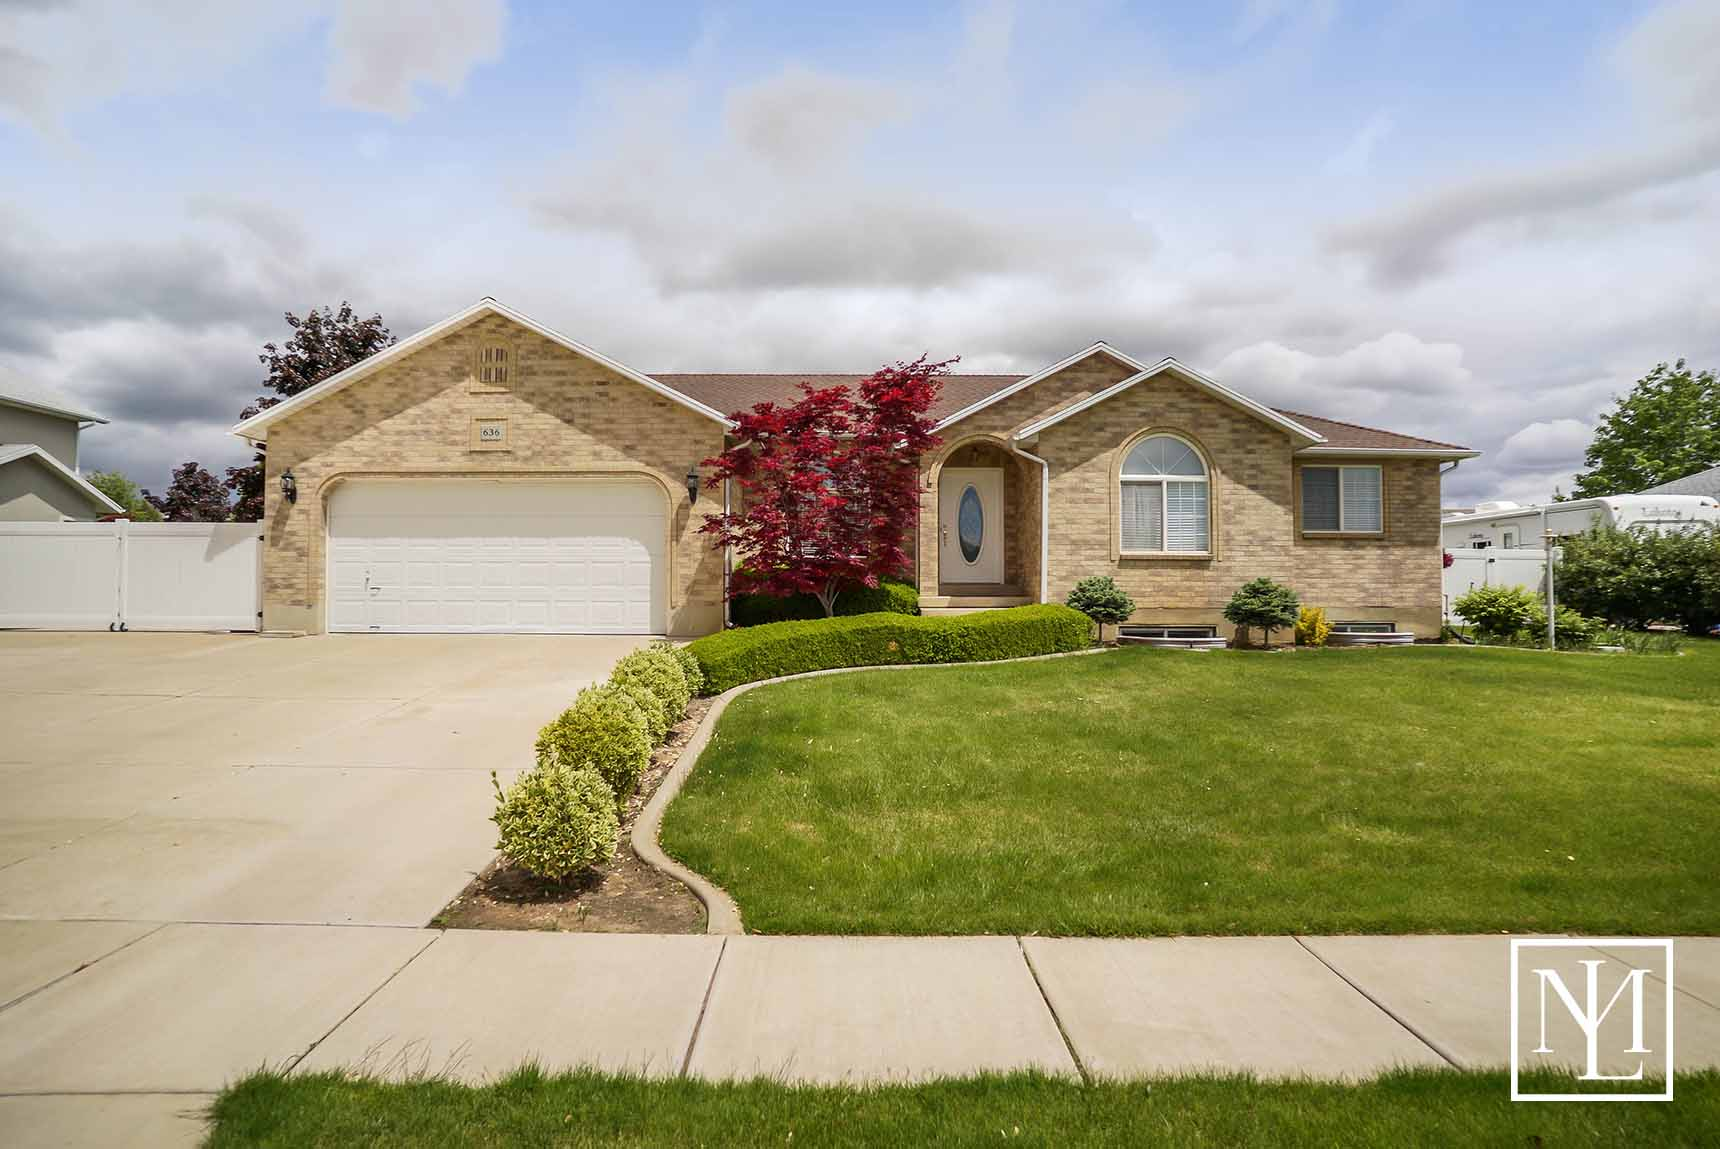 636 N 2200 W West Point UT 84015 01